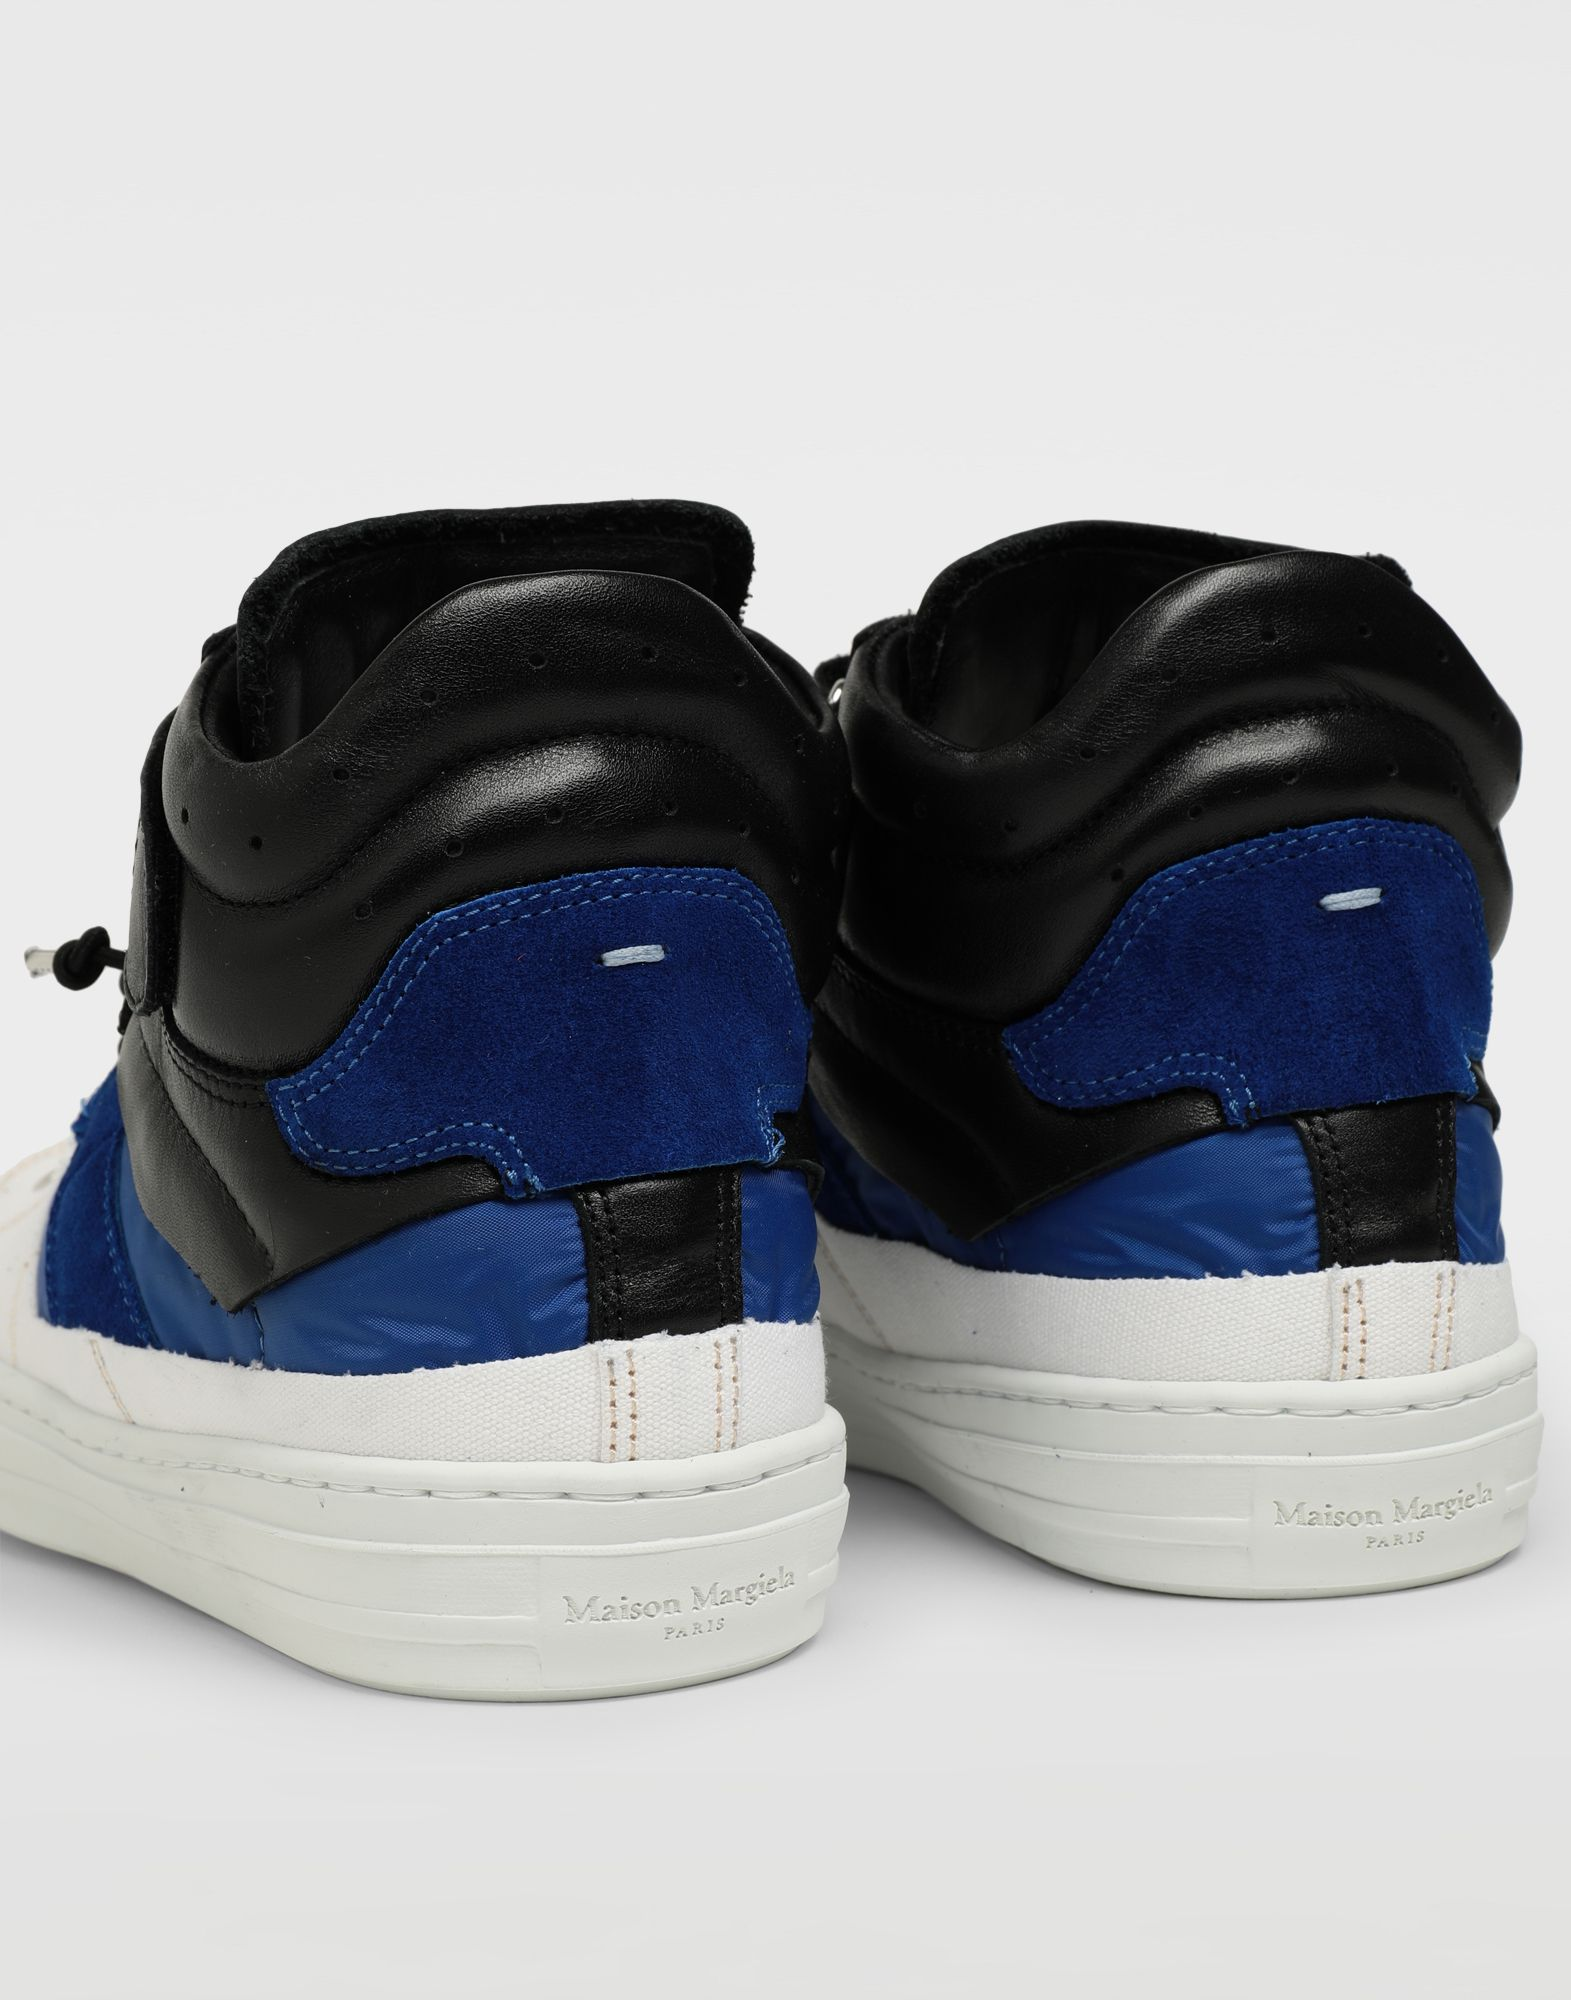 MAISON MARGIELA Spliced high top sneakers Sneakers Man e